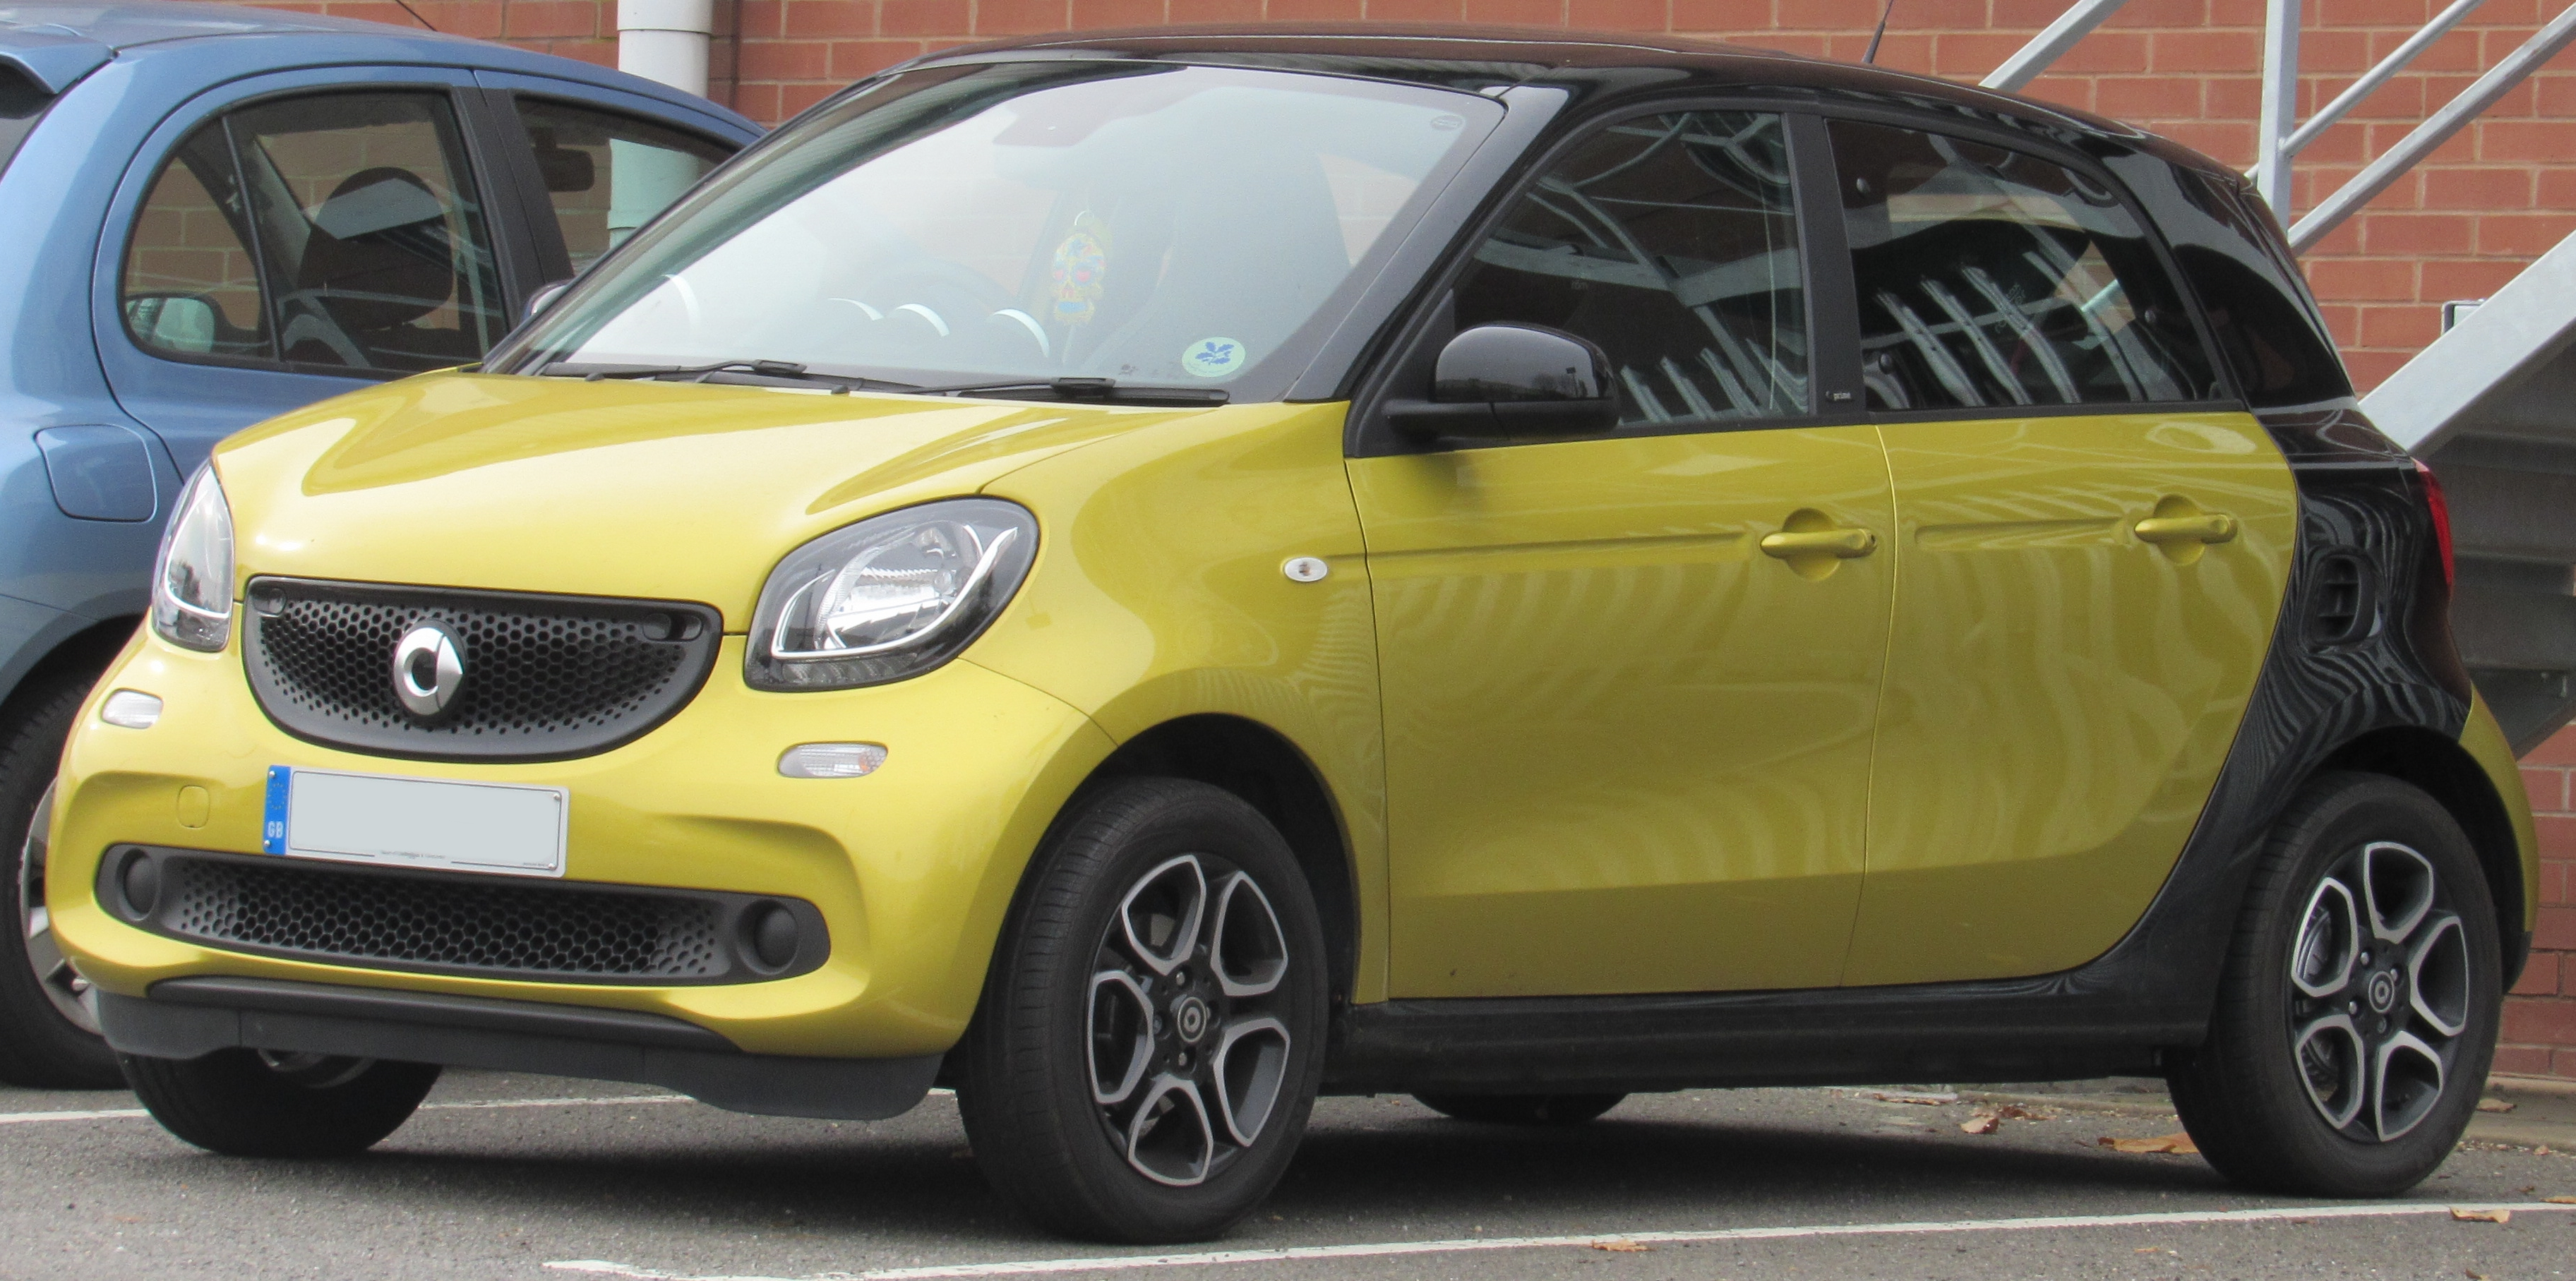 Smart Forfour - Wikipedia